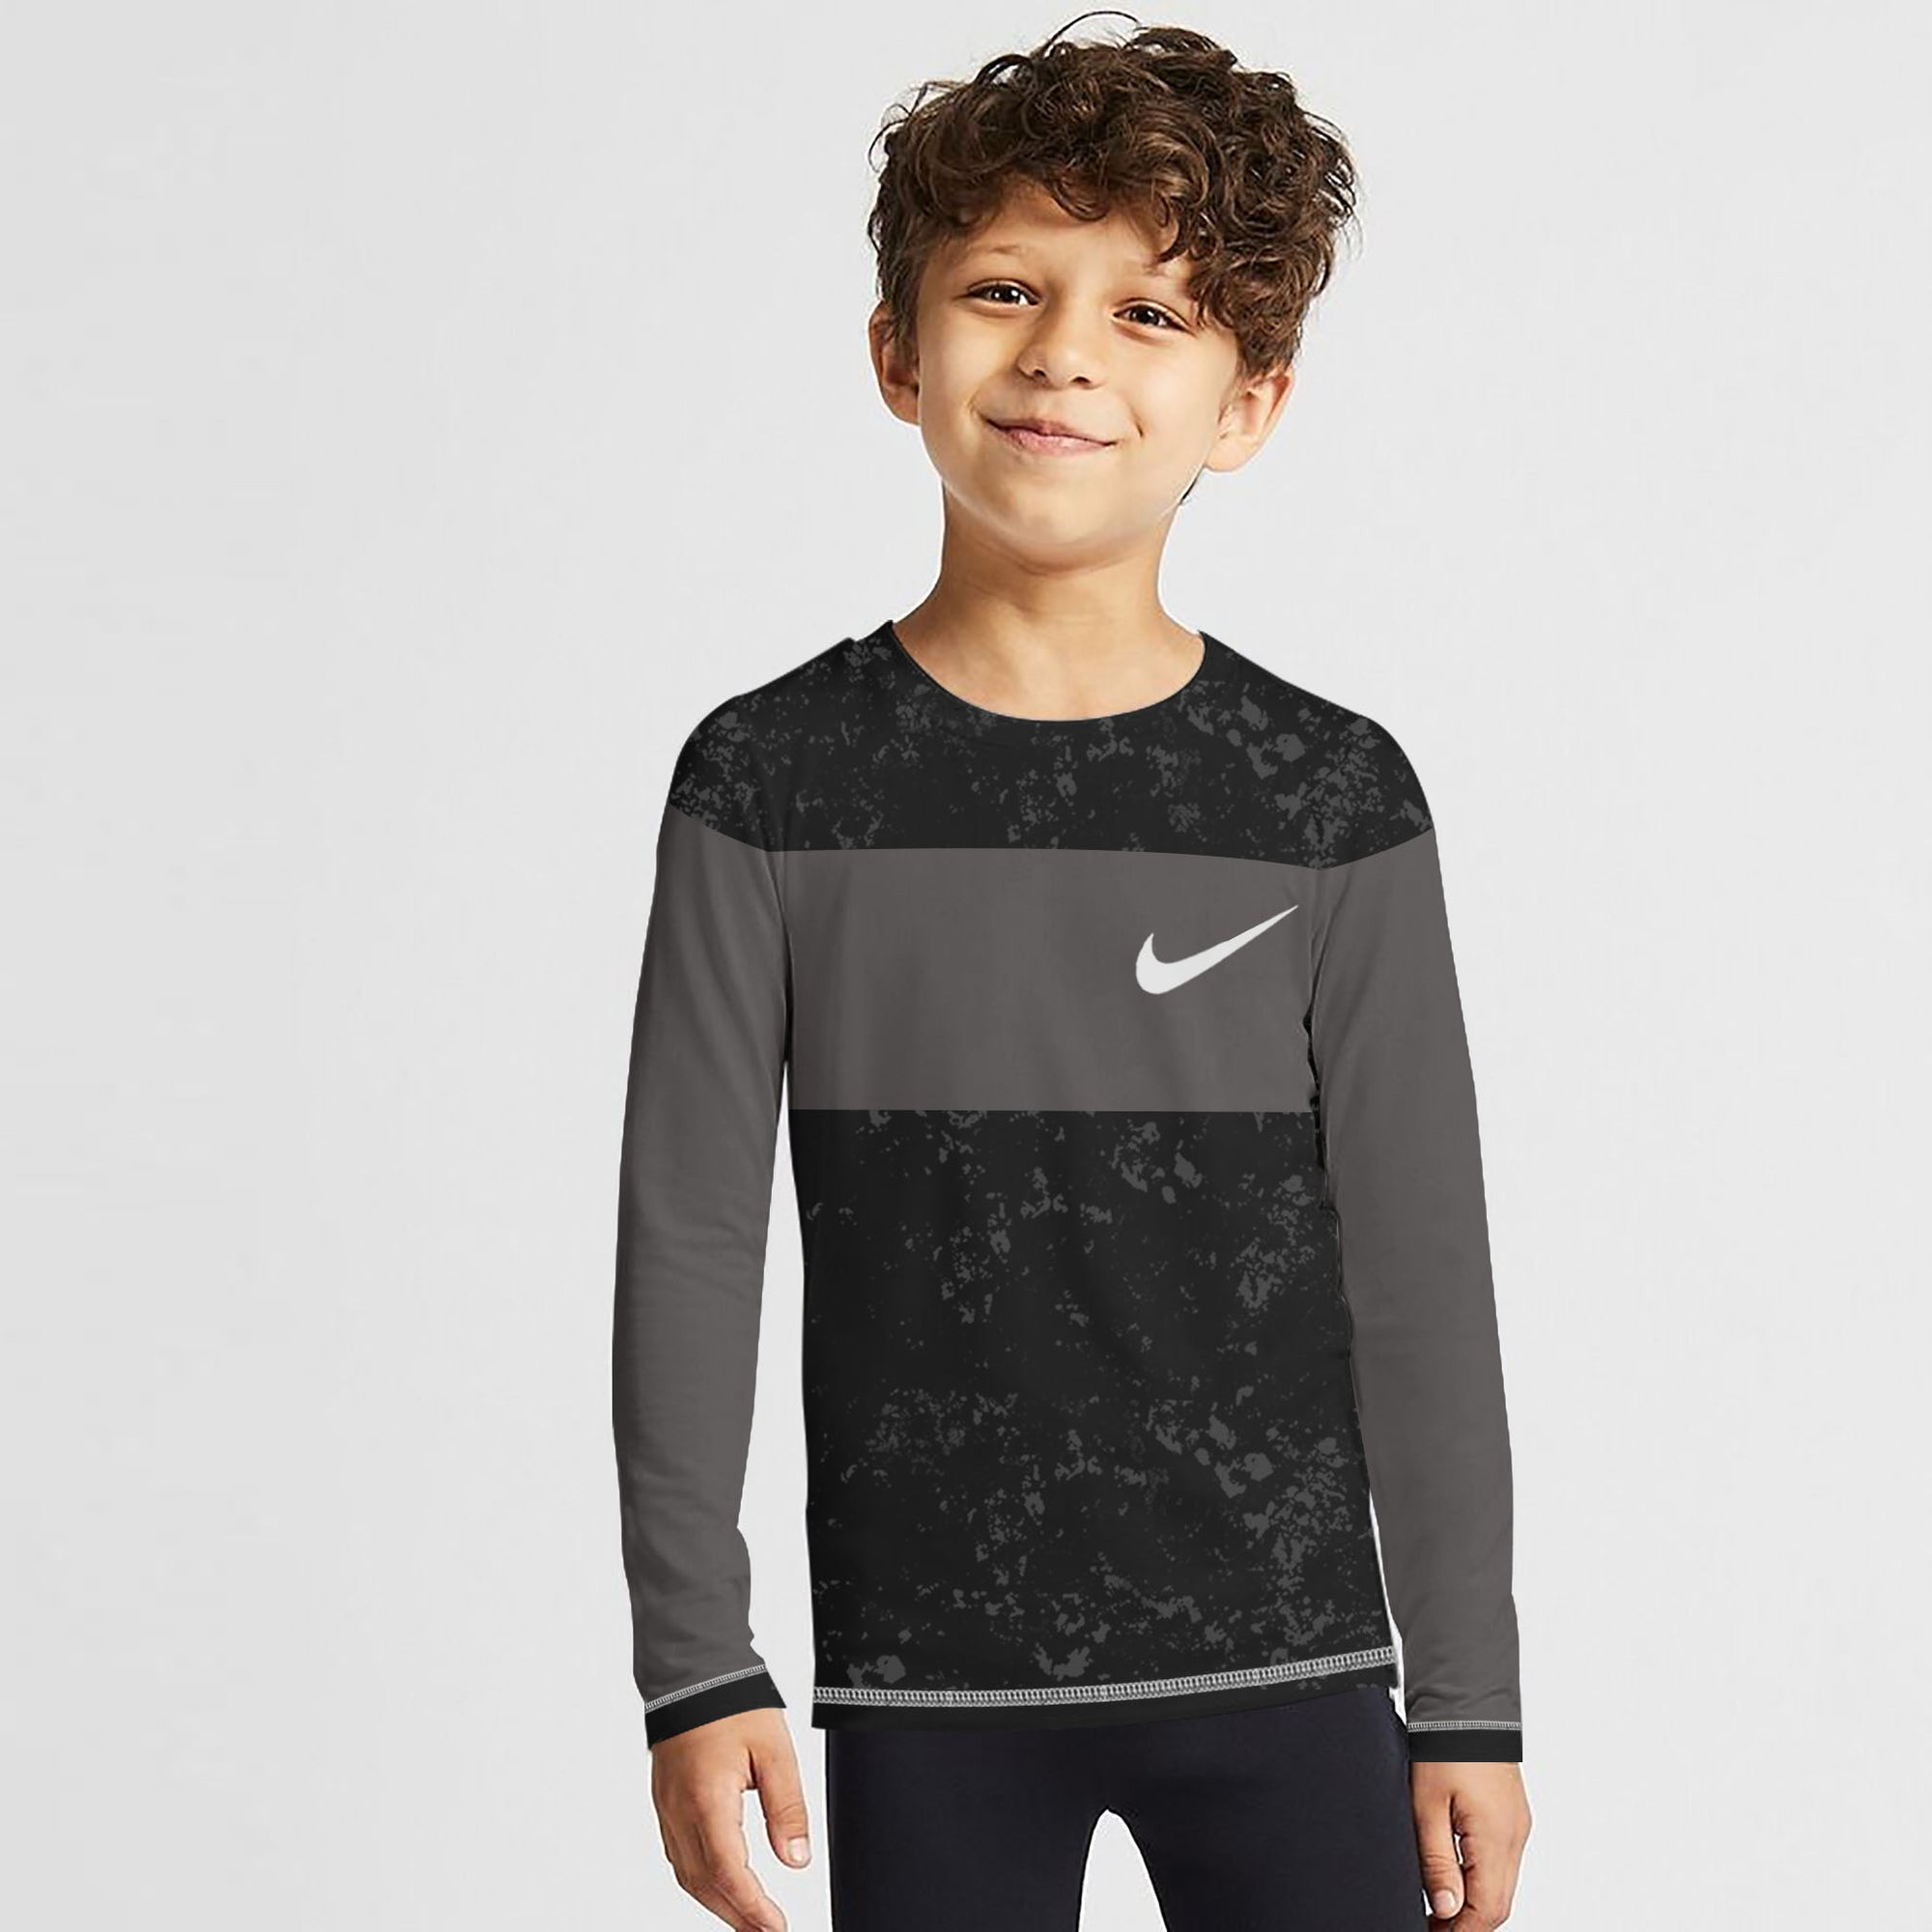 NK Crew Neck Single Jersey Long Sleeve Tee Shirt For Kids-Black Faded With Dark Grey Panel-SP3525